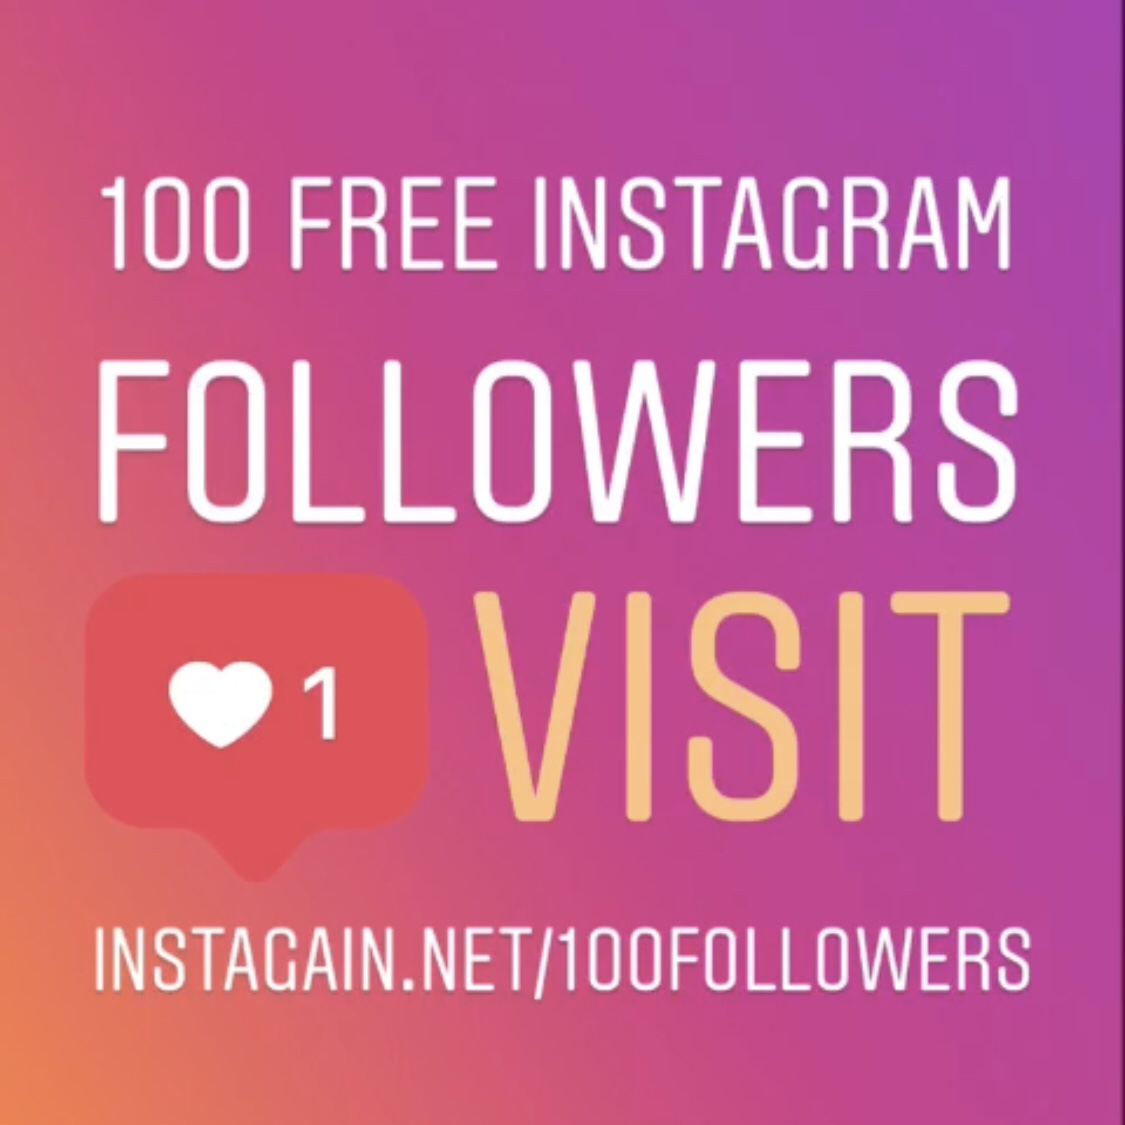 100 FREE Instagram Followers | InstaGain